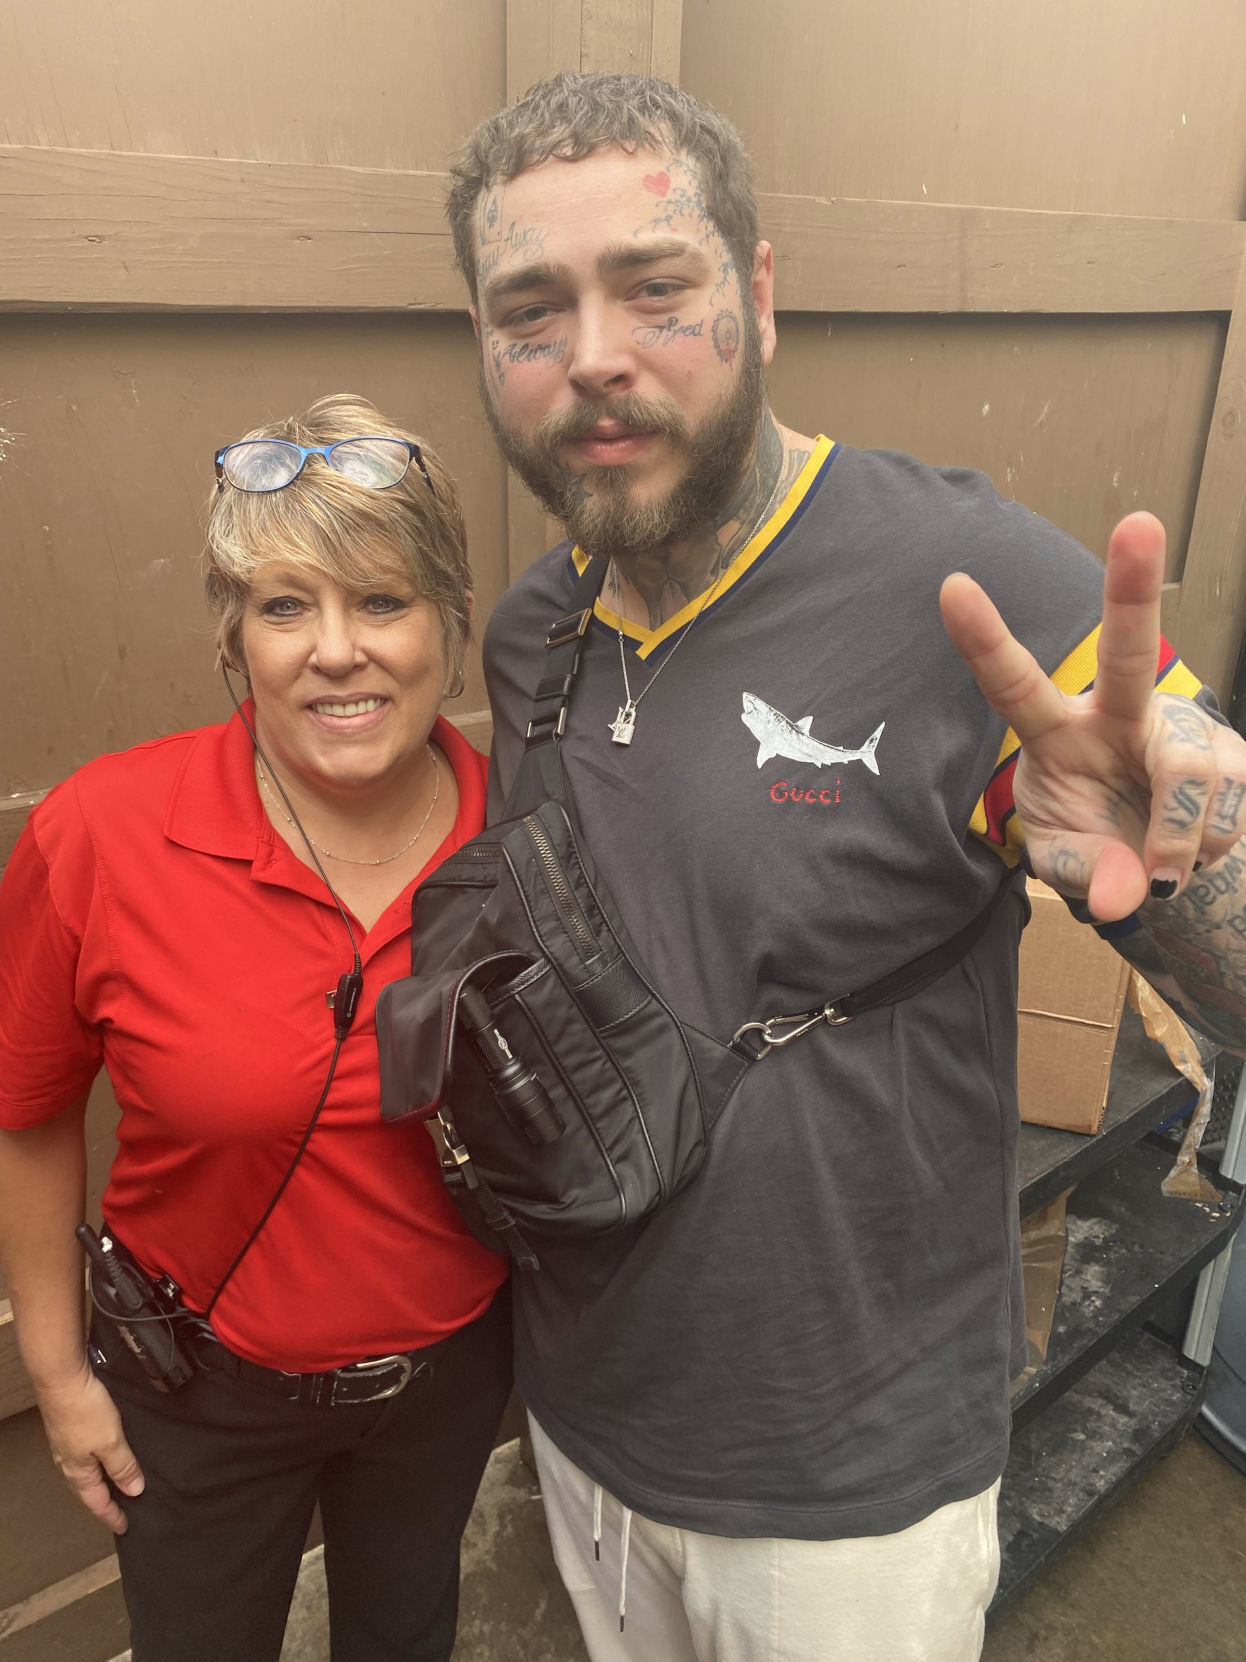 Rapper Post Malone visits Tully's in Clarks Summit